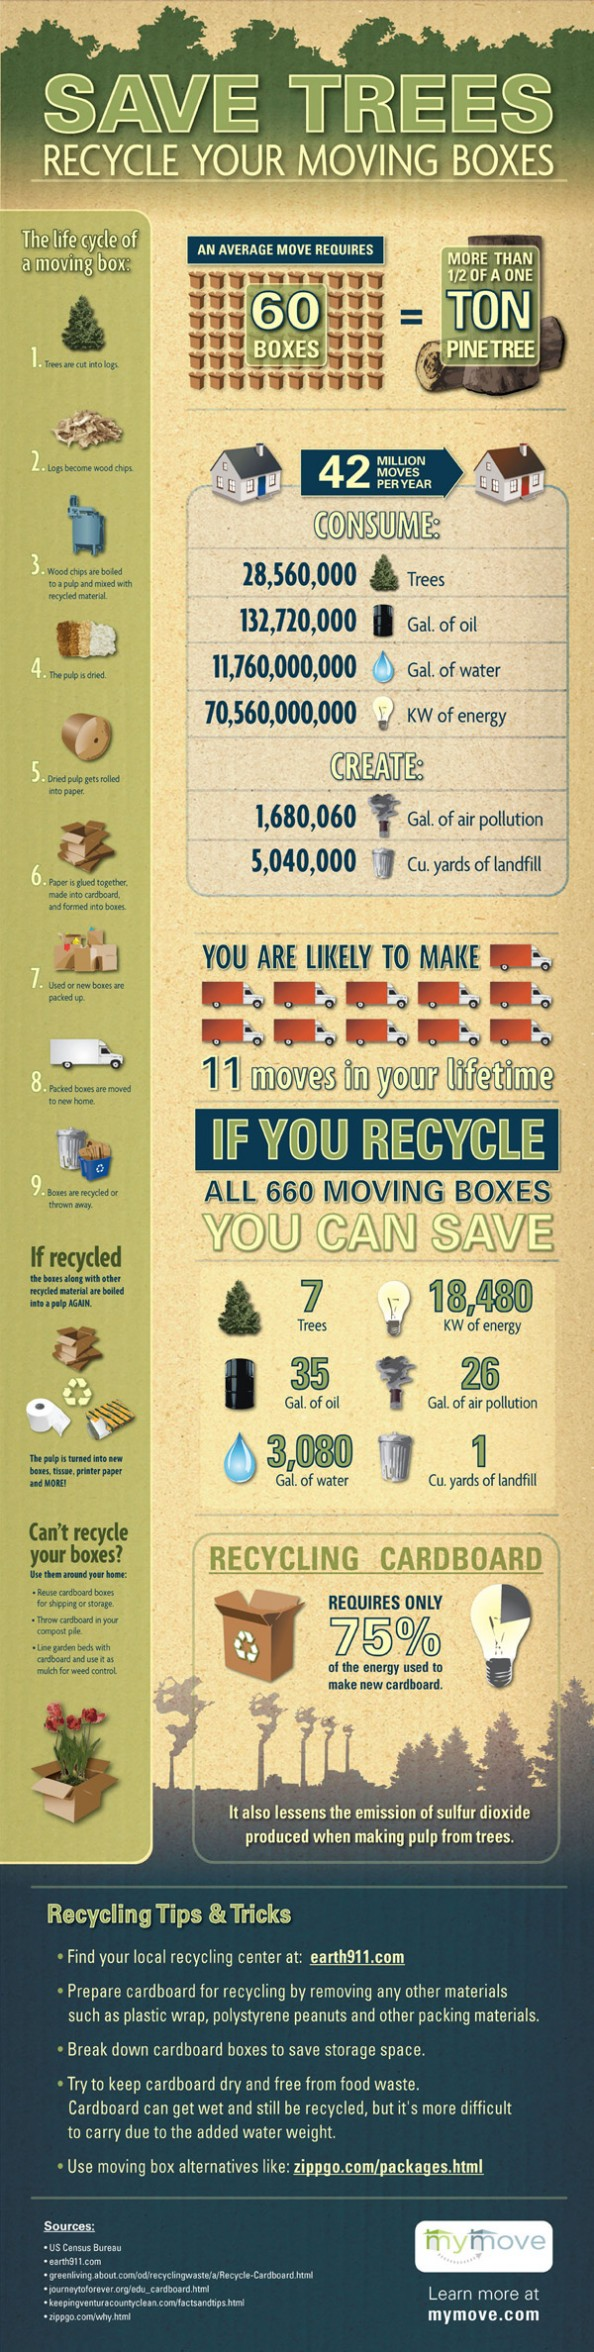 Save Trees: Recycle Your Moving Boxes | Visual.ly